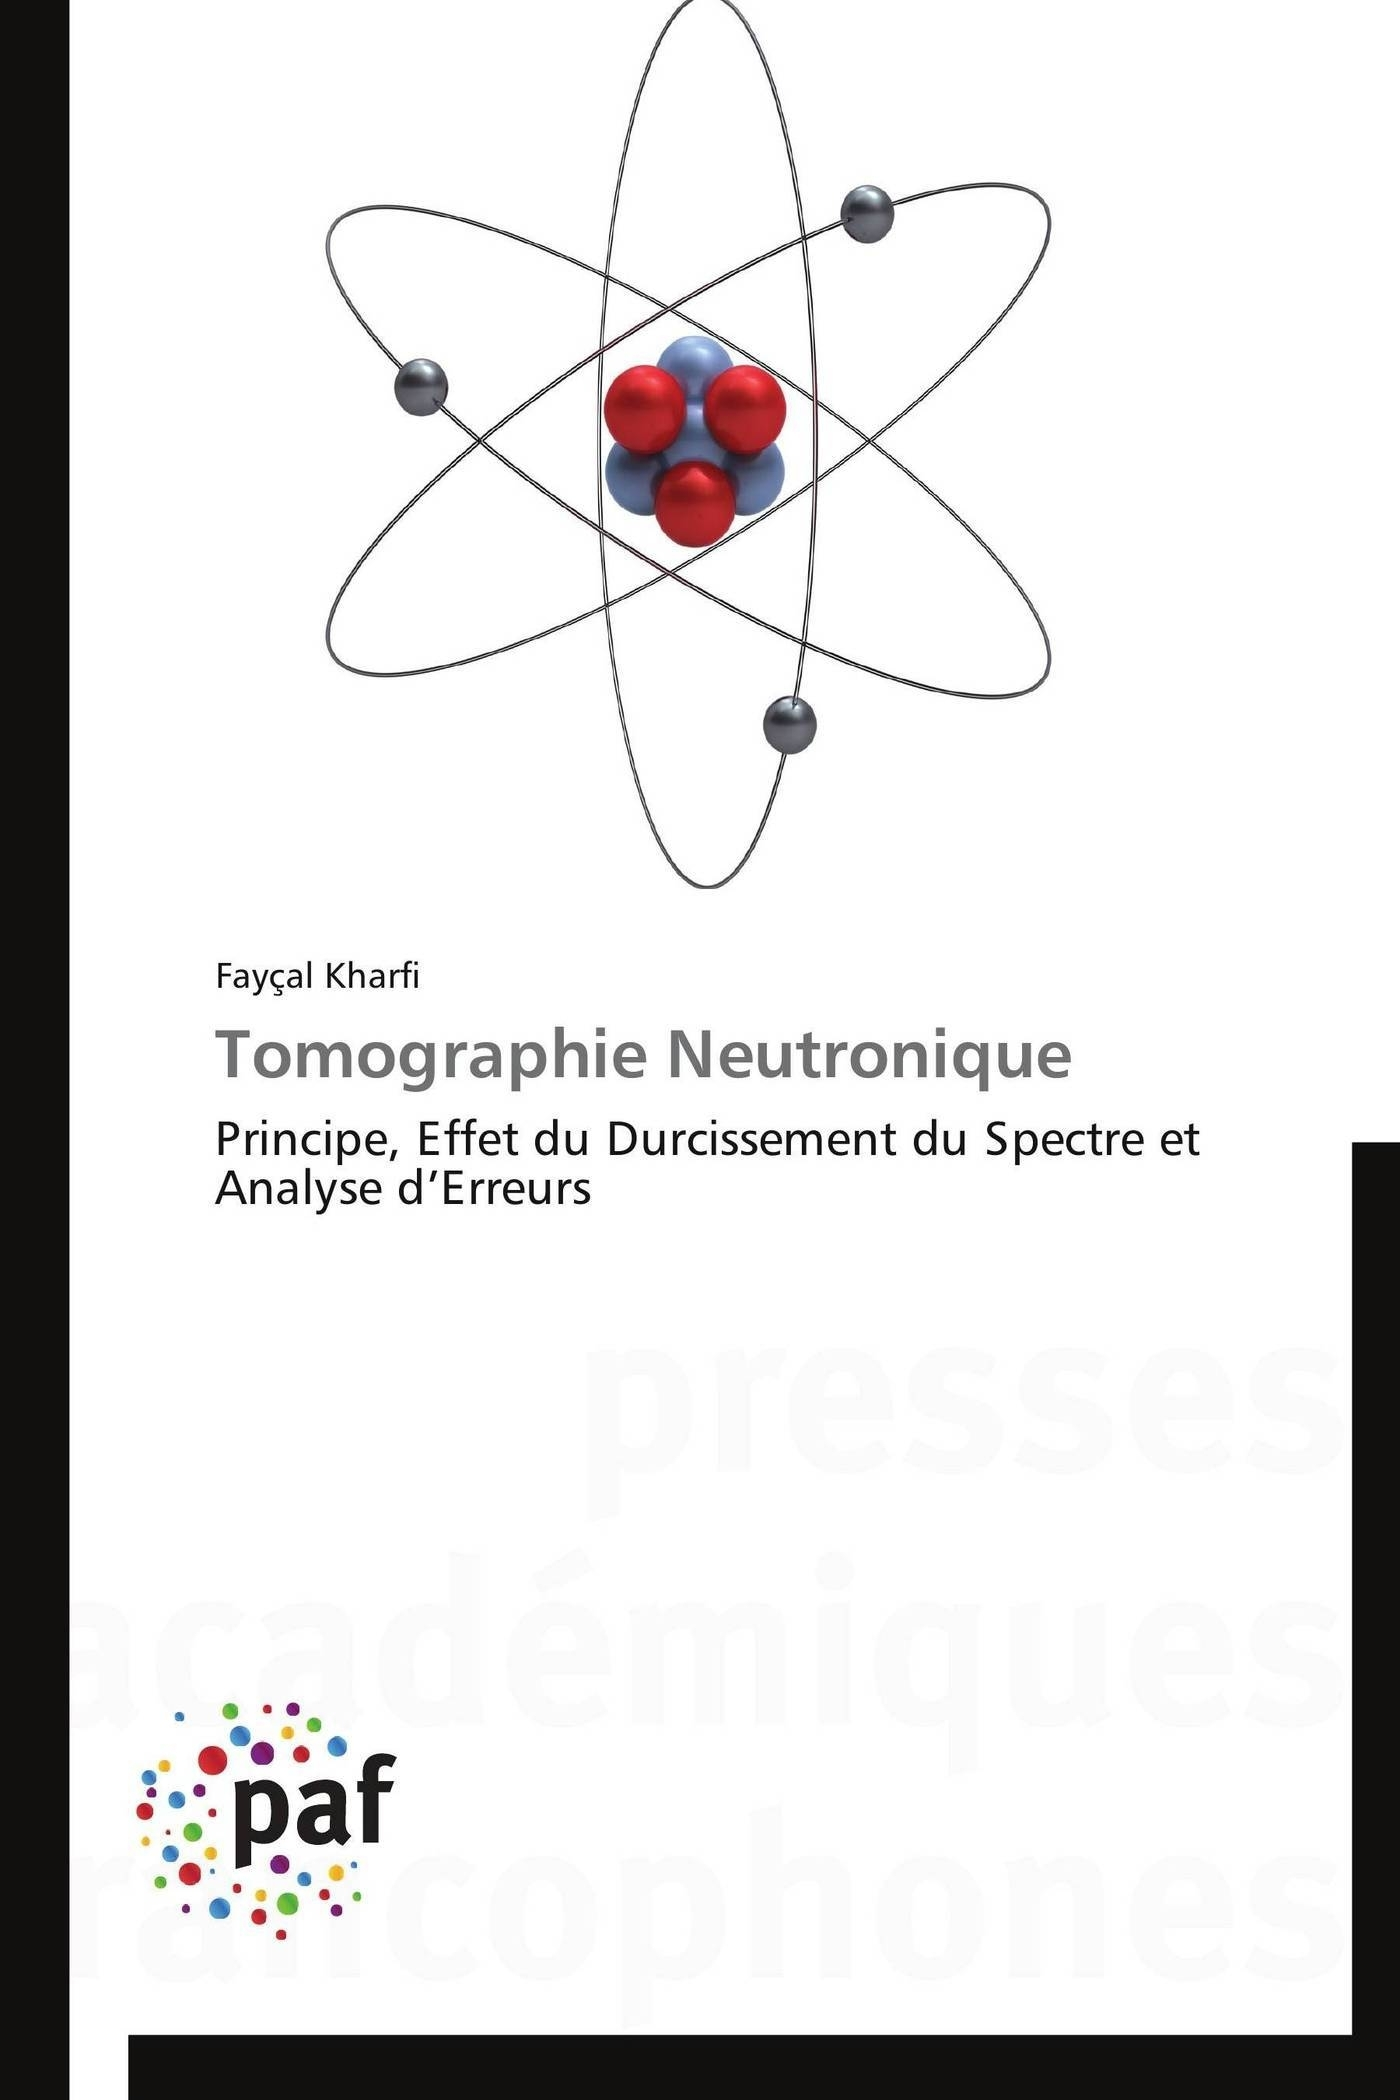 TOMOGRAPHIE NEUTRONIQUE